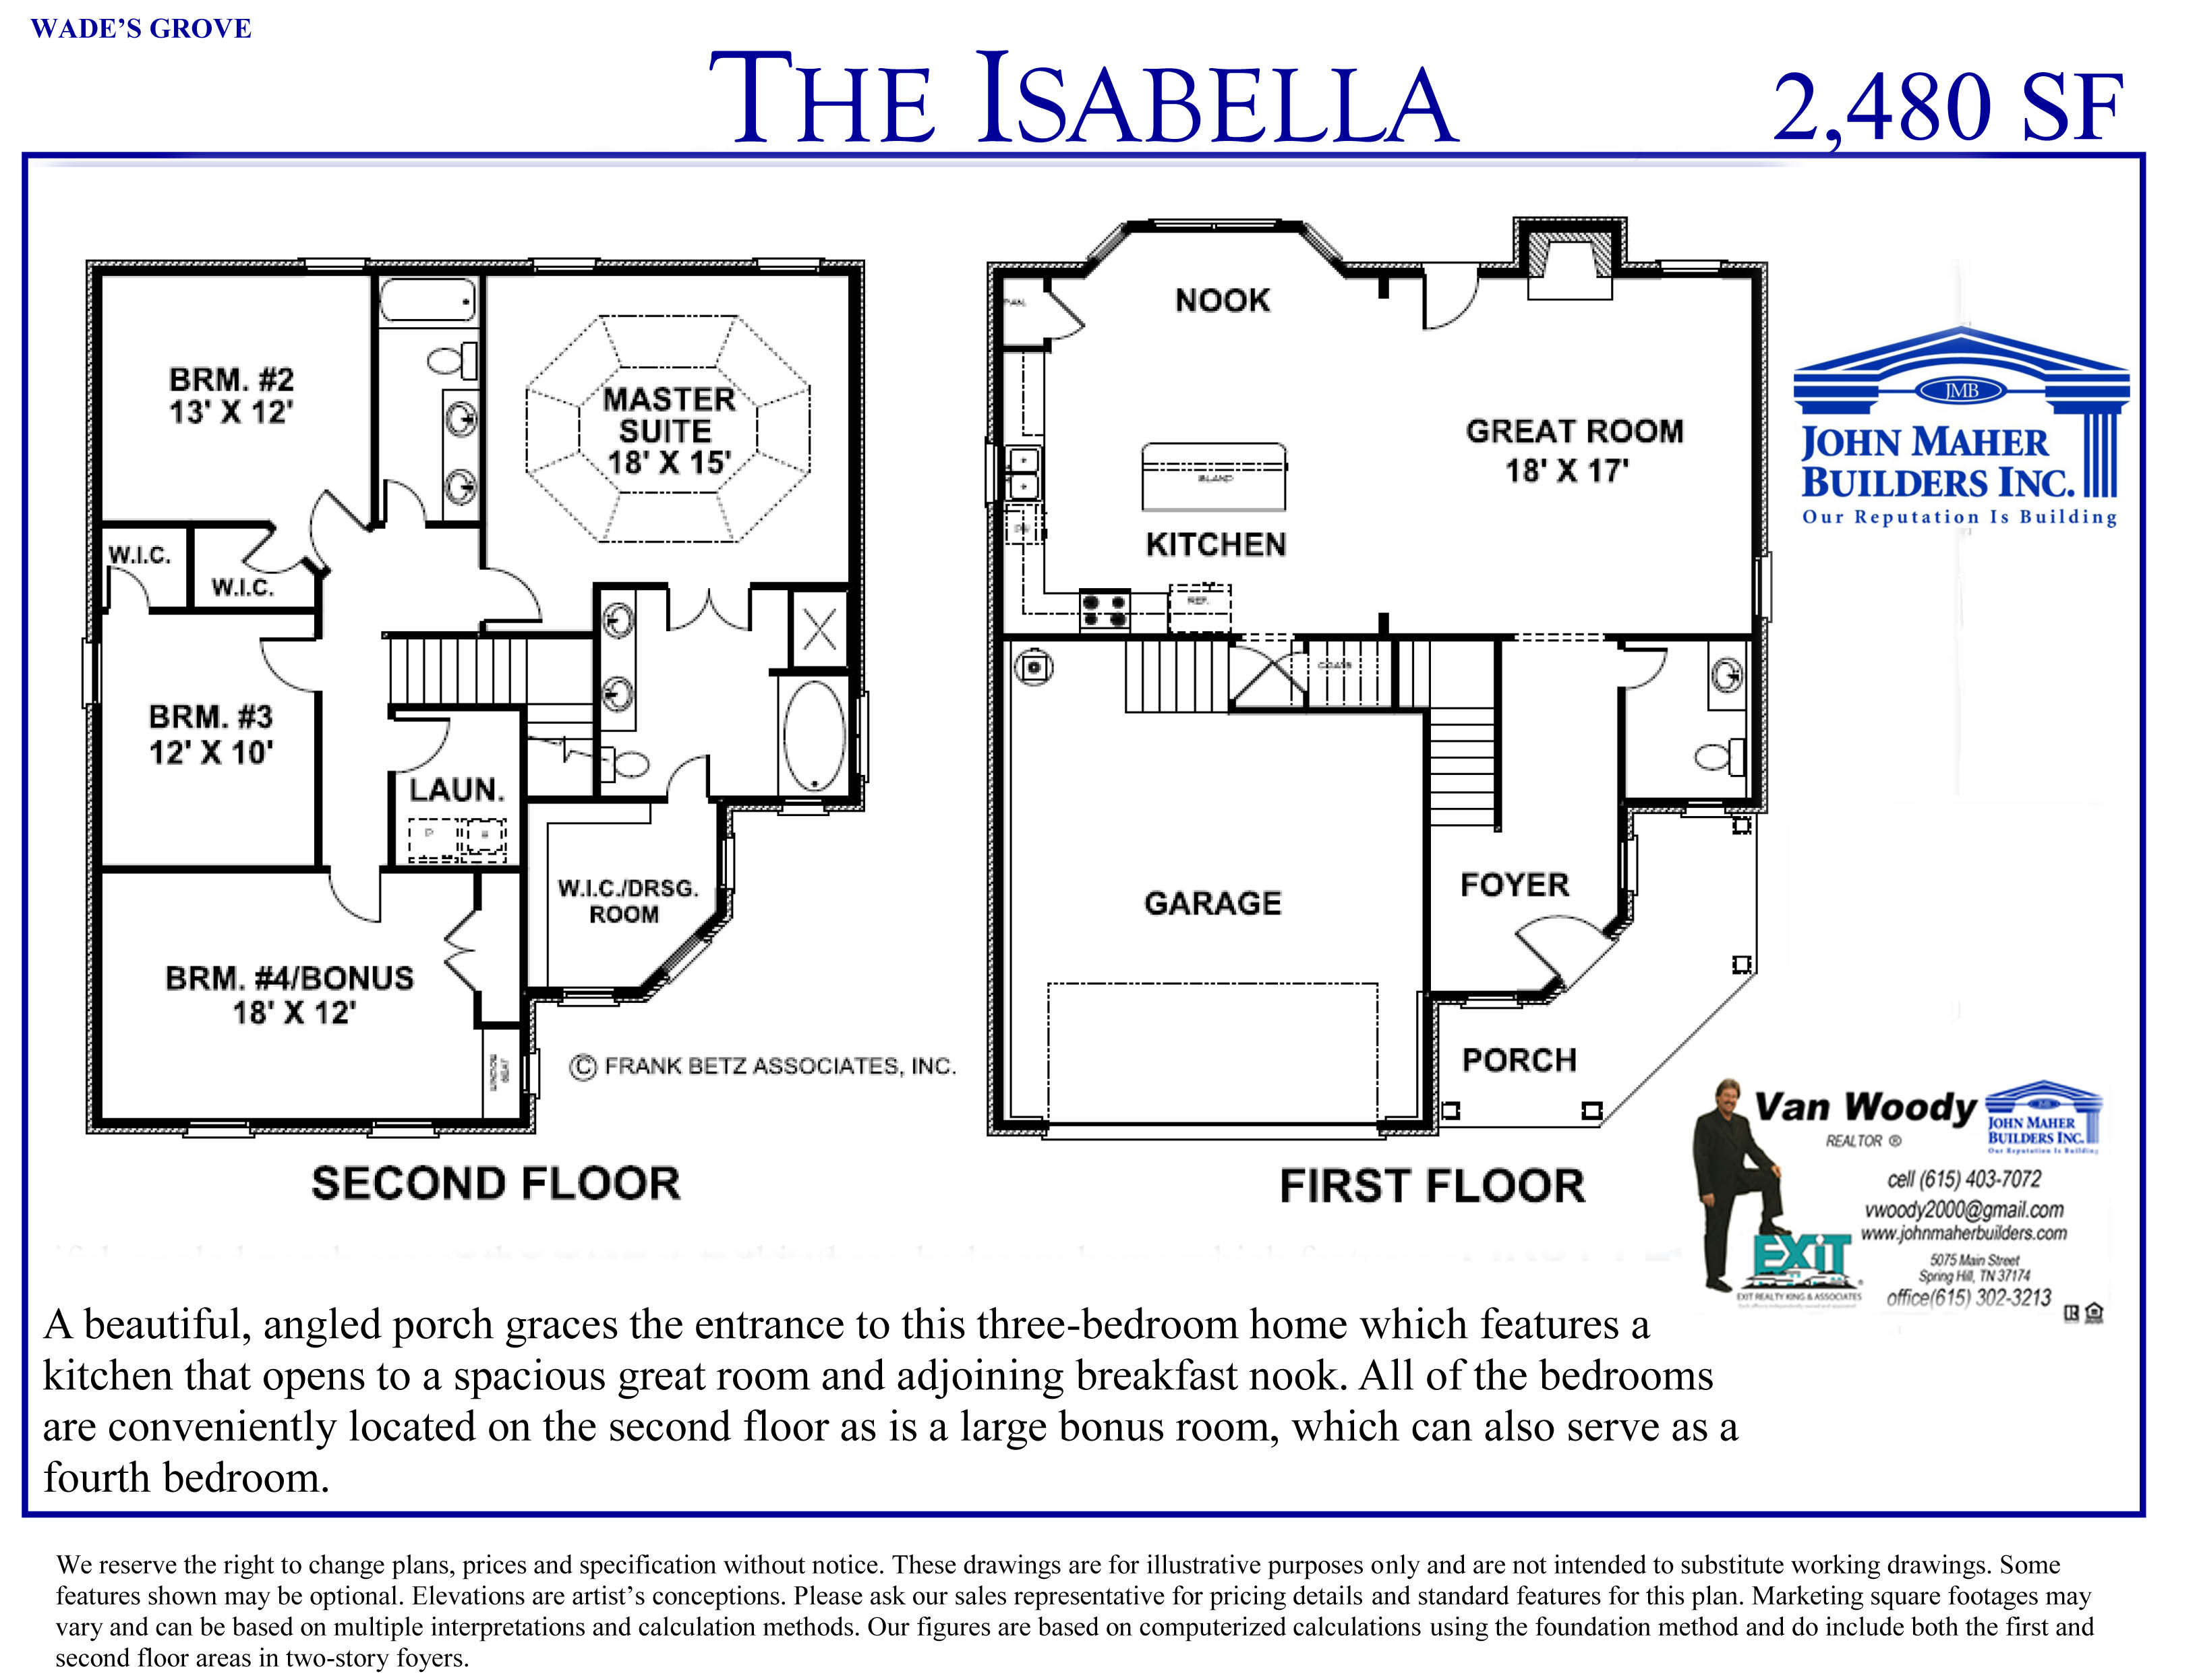 The Isabella Plan in Wades Grove